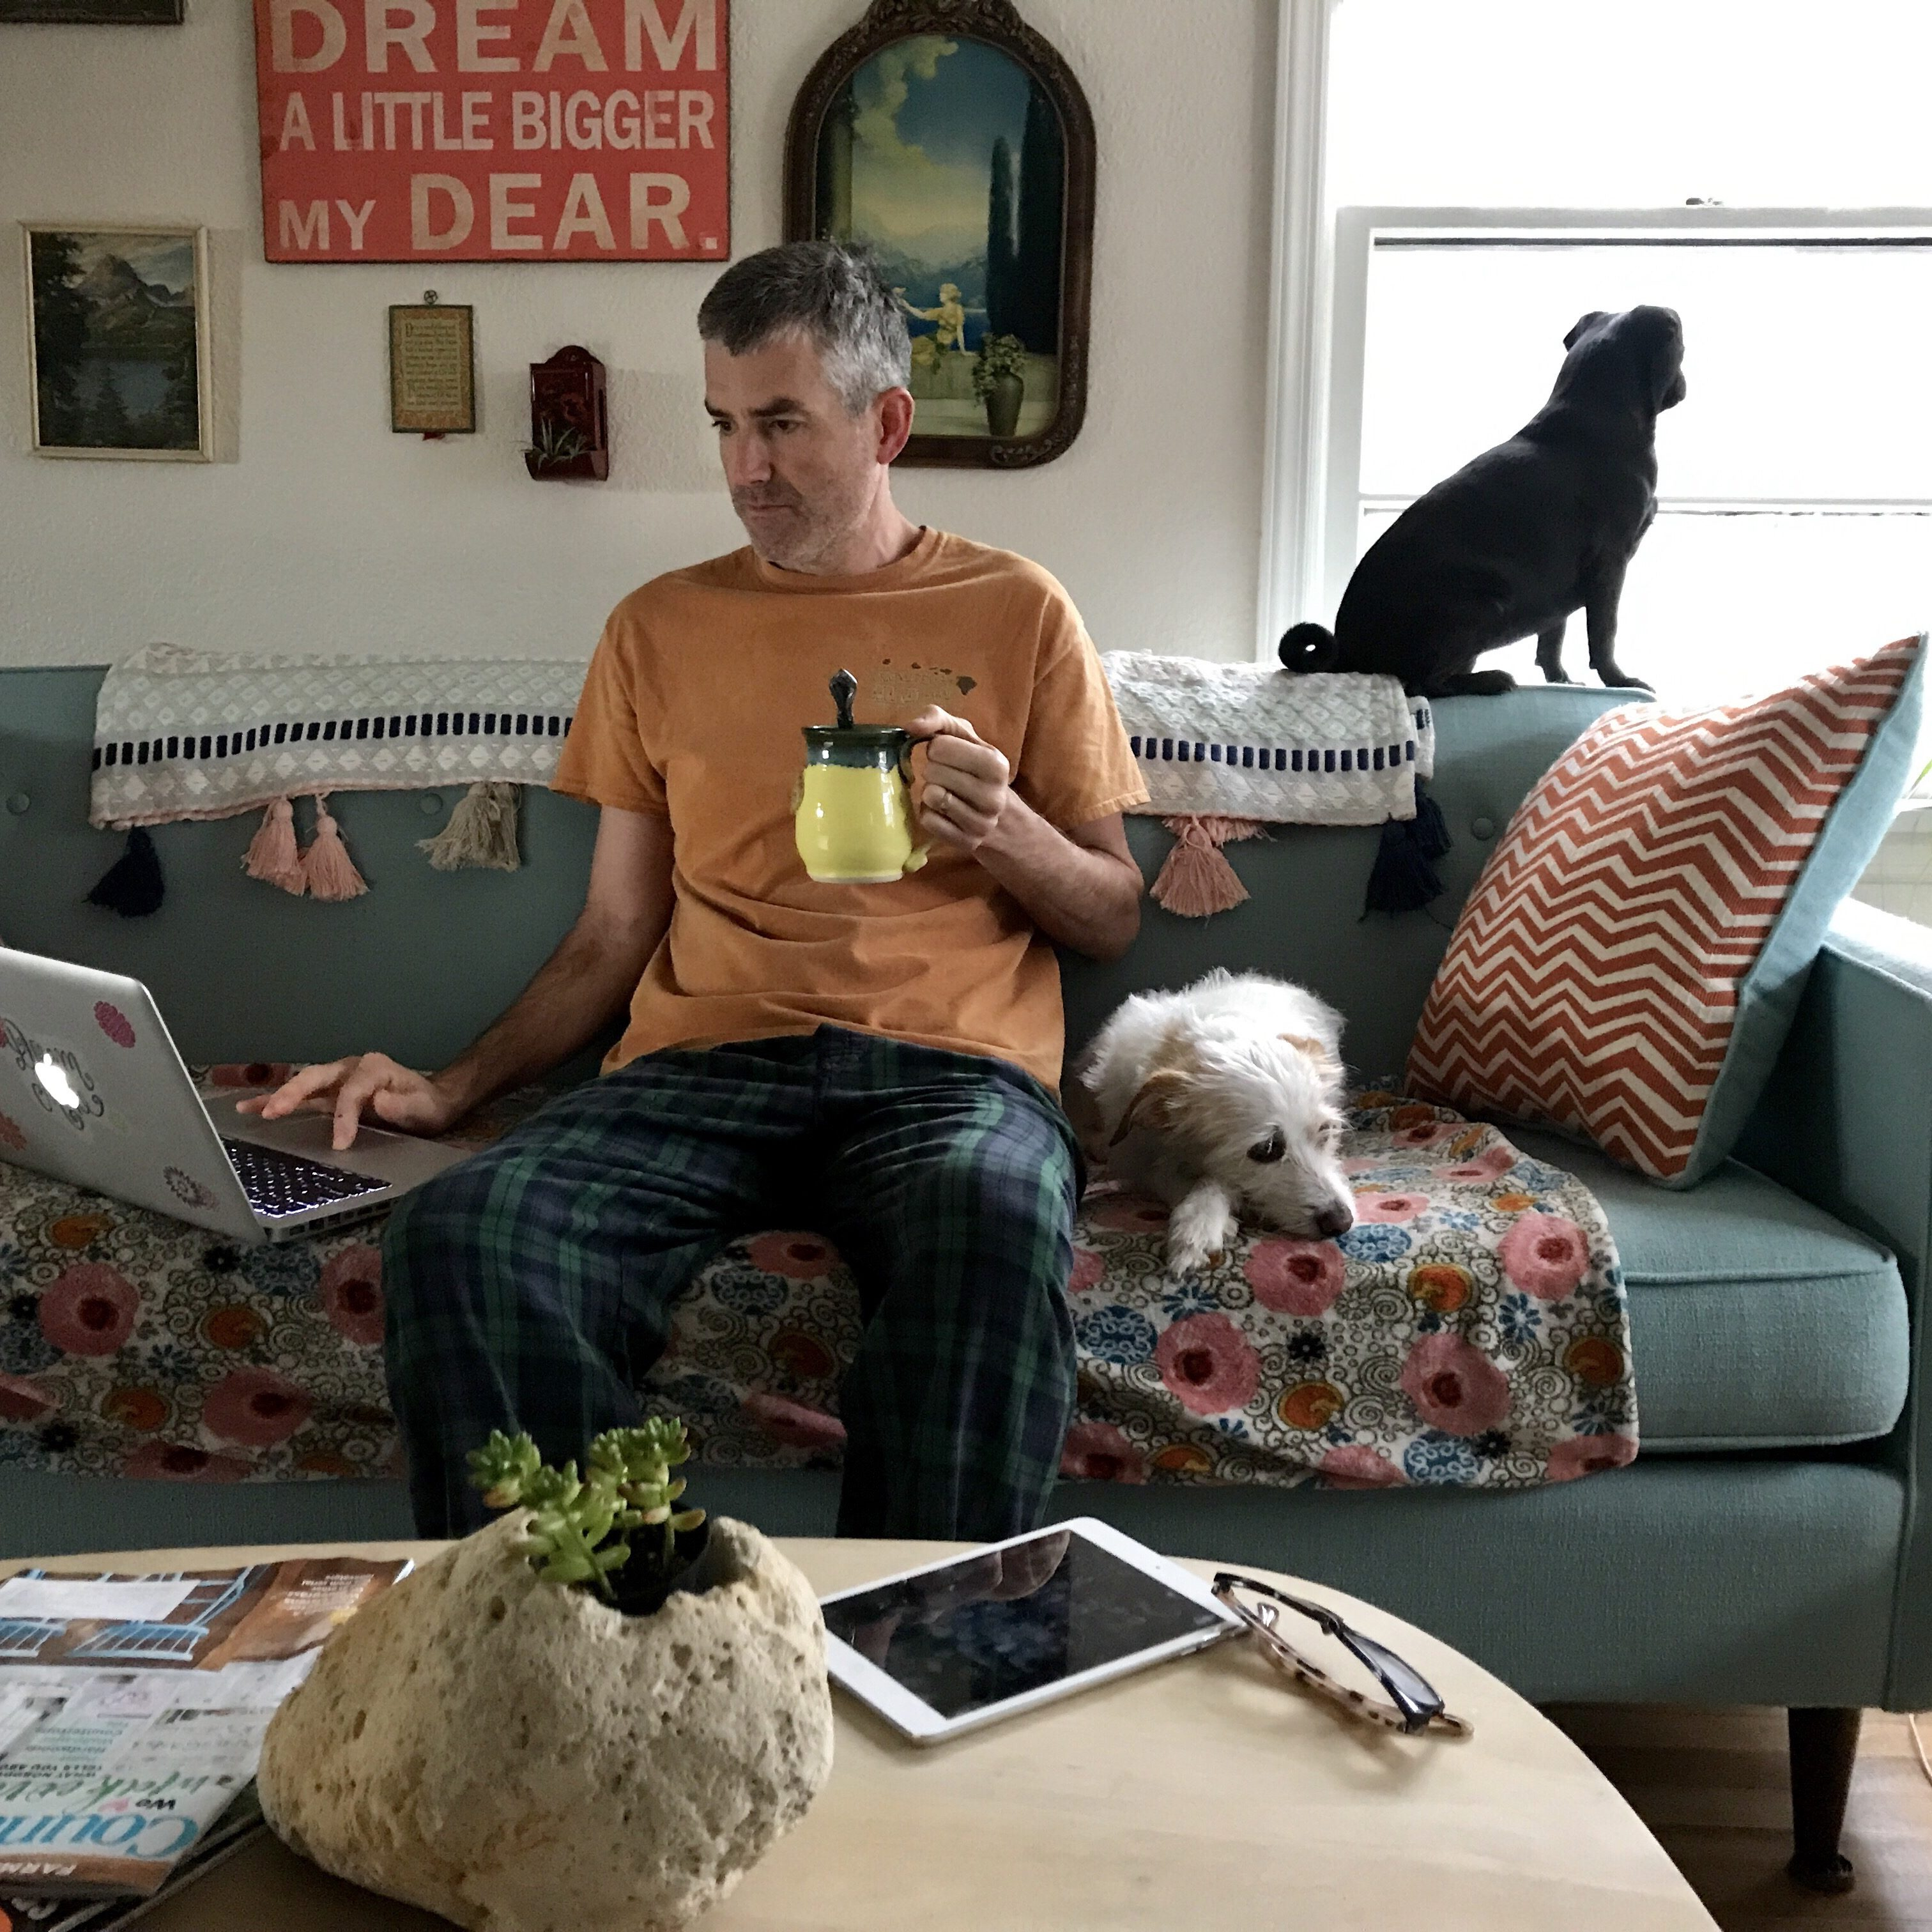 Streaming movies on the couch with pets